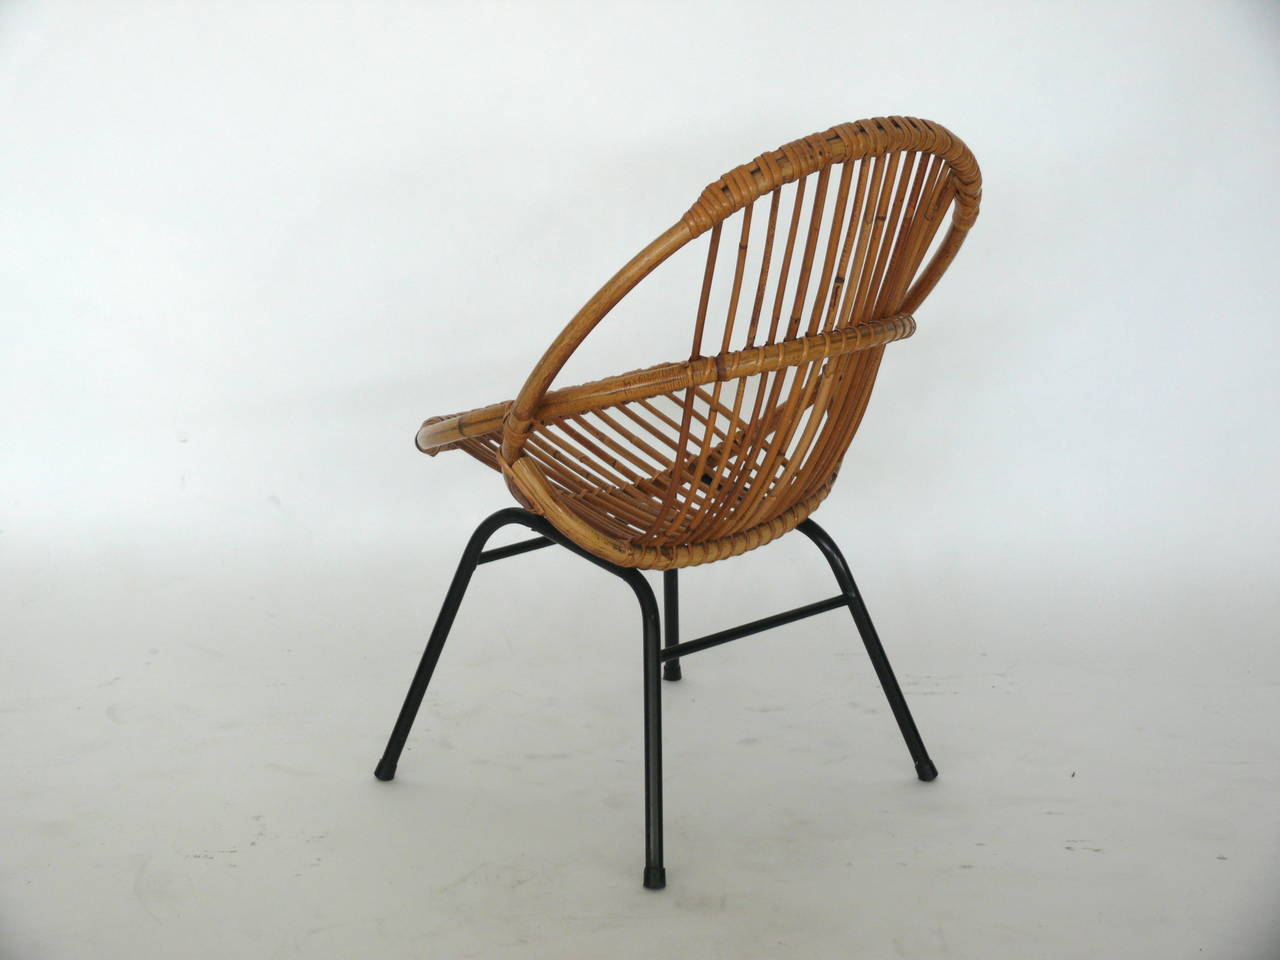 French Rattan Bistro Chairs French Rattan And Iron Chairs At 1stdibs